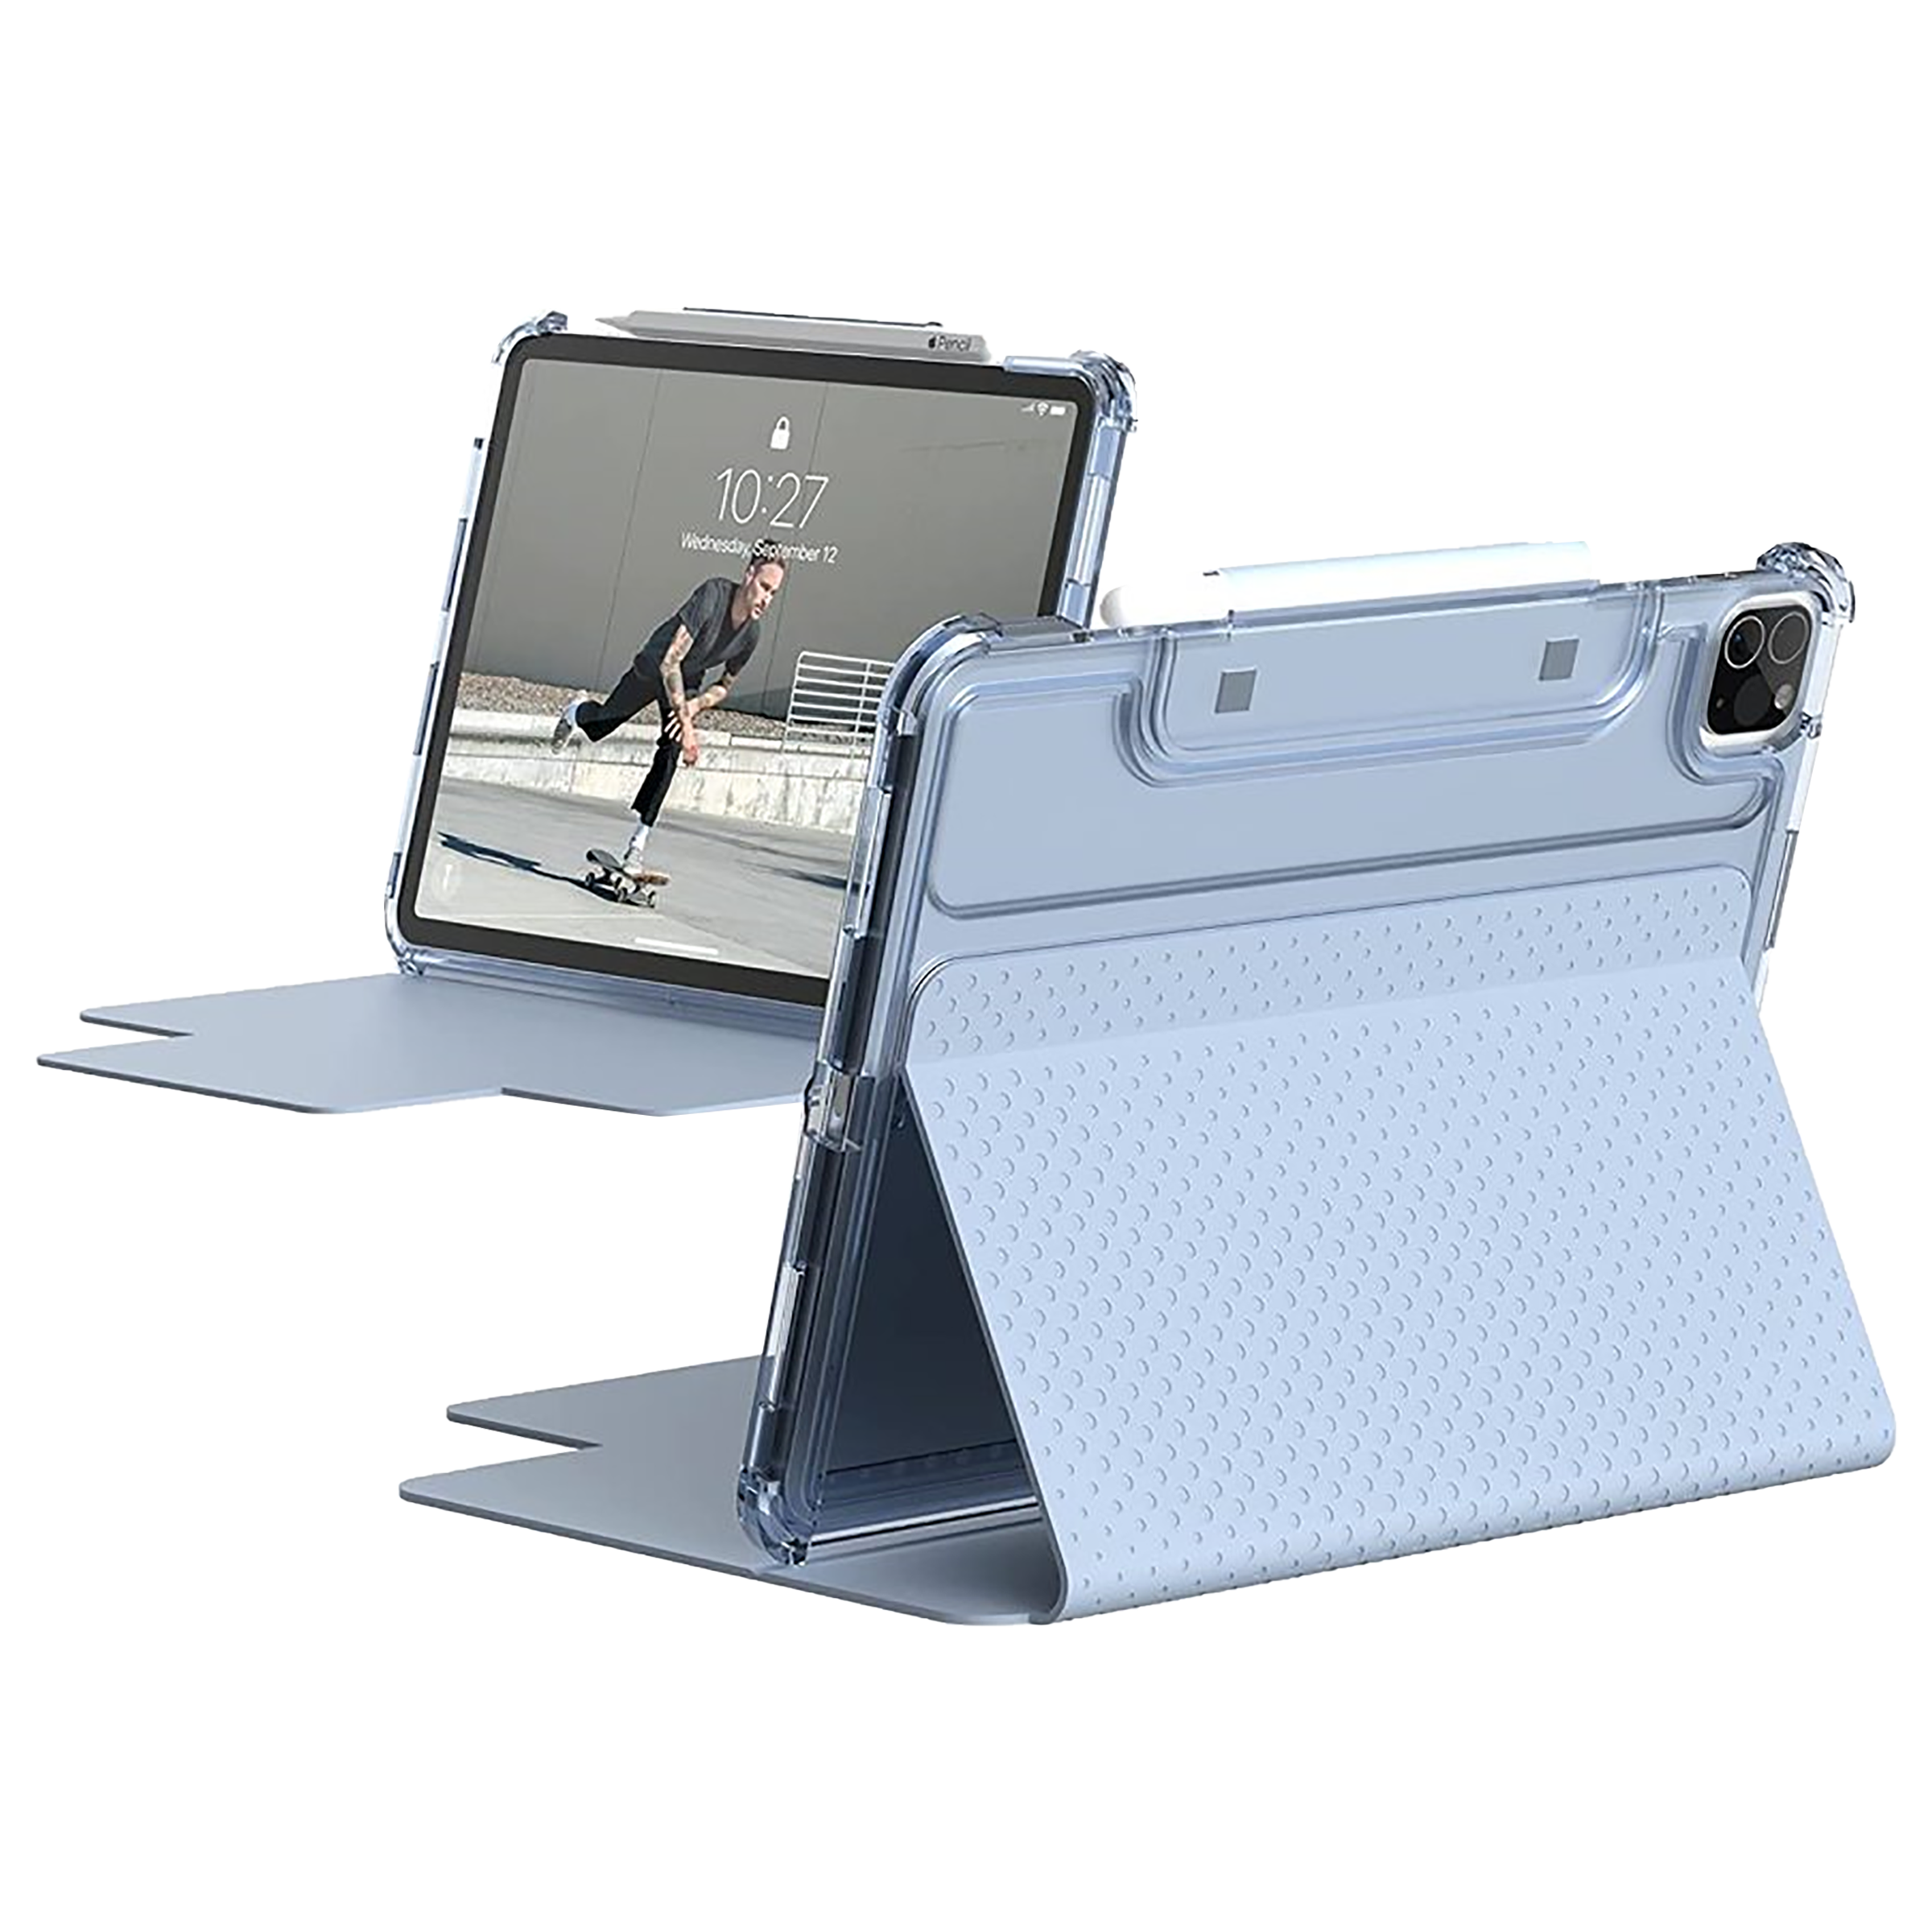 UAG Lucent Polycarbonate Flip Case with Stand For Apple iPad Pro 11 Inch / iPad Air 4 (10.9 Inch) (Built-In Apple Pencil Holder, UGLU_IPD11PG3_BU, Soft Blue)_1